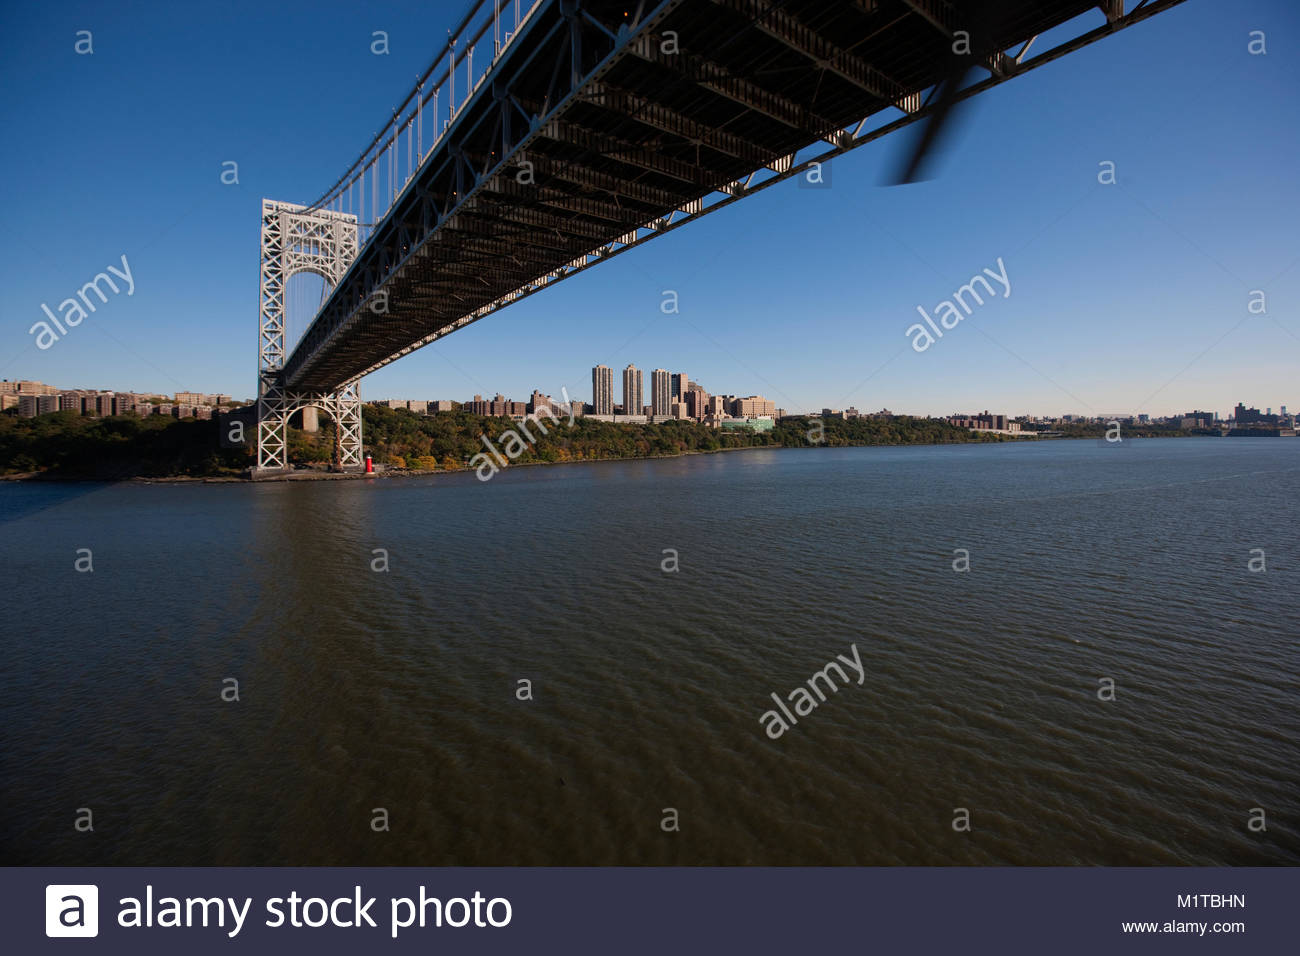 Fort Lee, New Jersey. - Stock Image